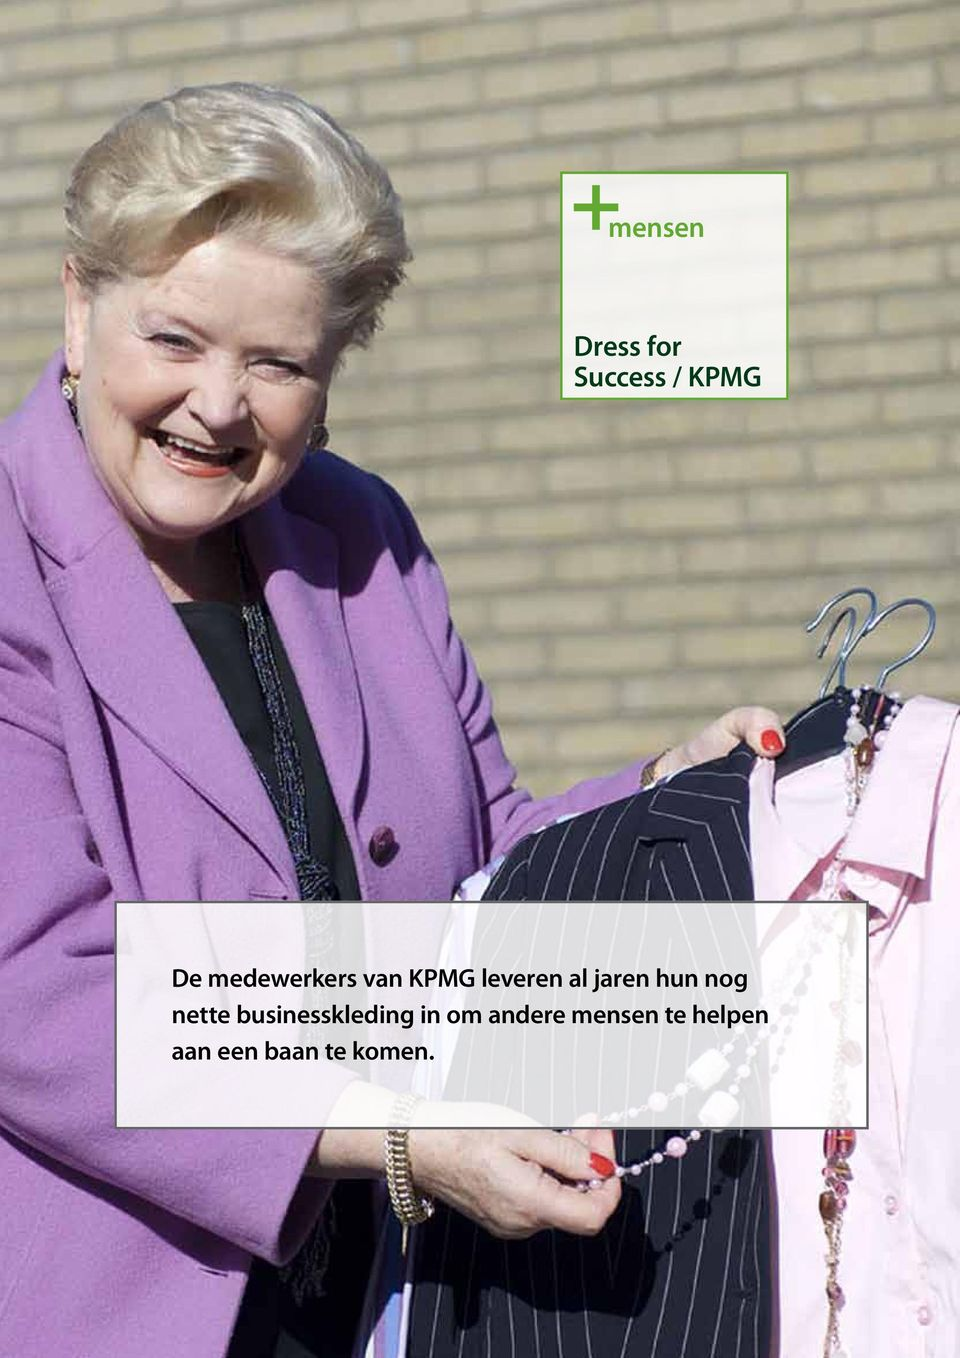 hun nog nette businesskleding in om